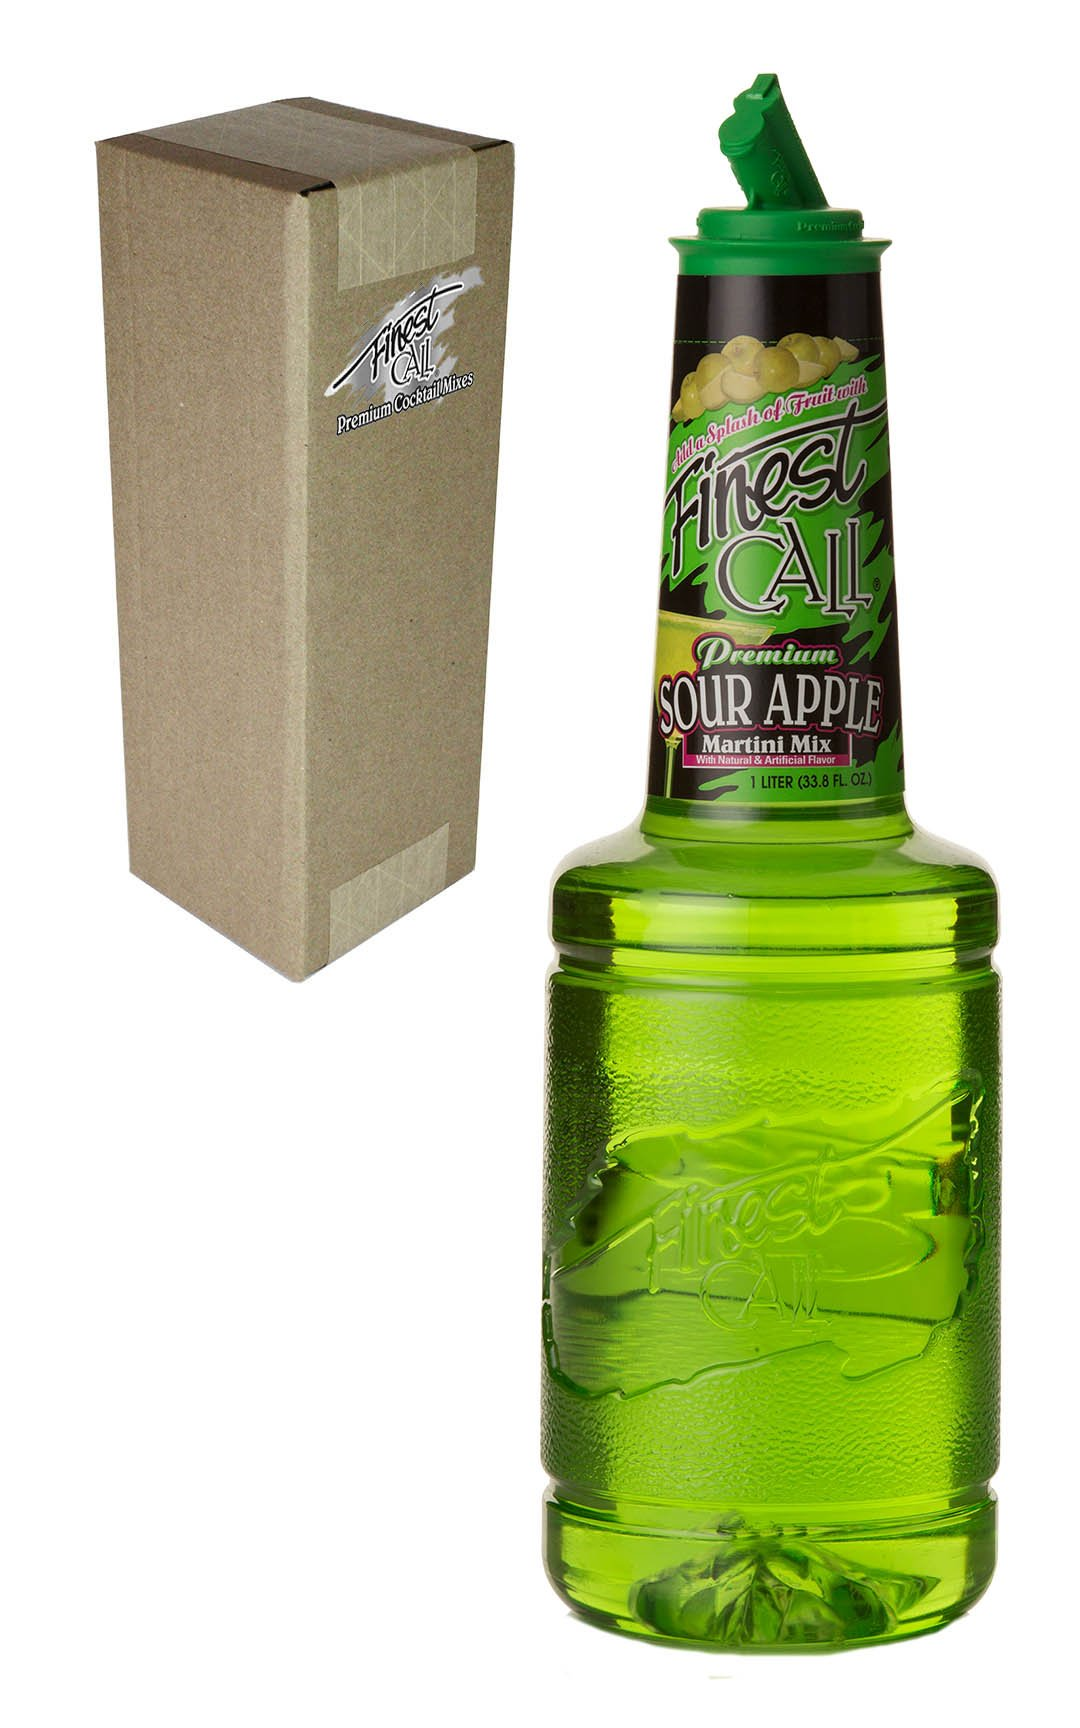 Finest Call Premium Sour Apple Martini Drink Mix, 1 Liter Bottle (33.8 Fl Oz), Individually Boxed by Finest Call